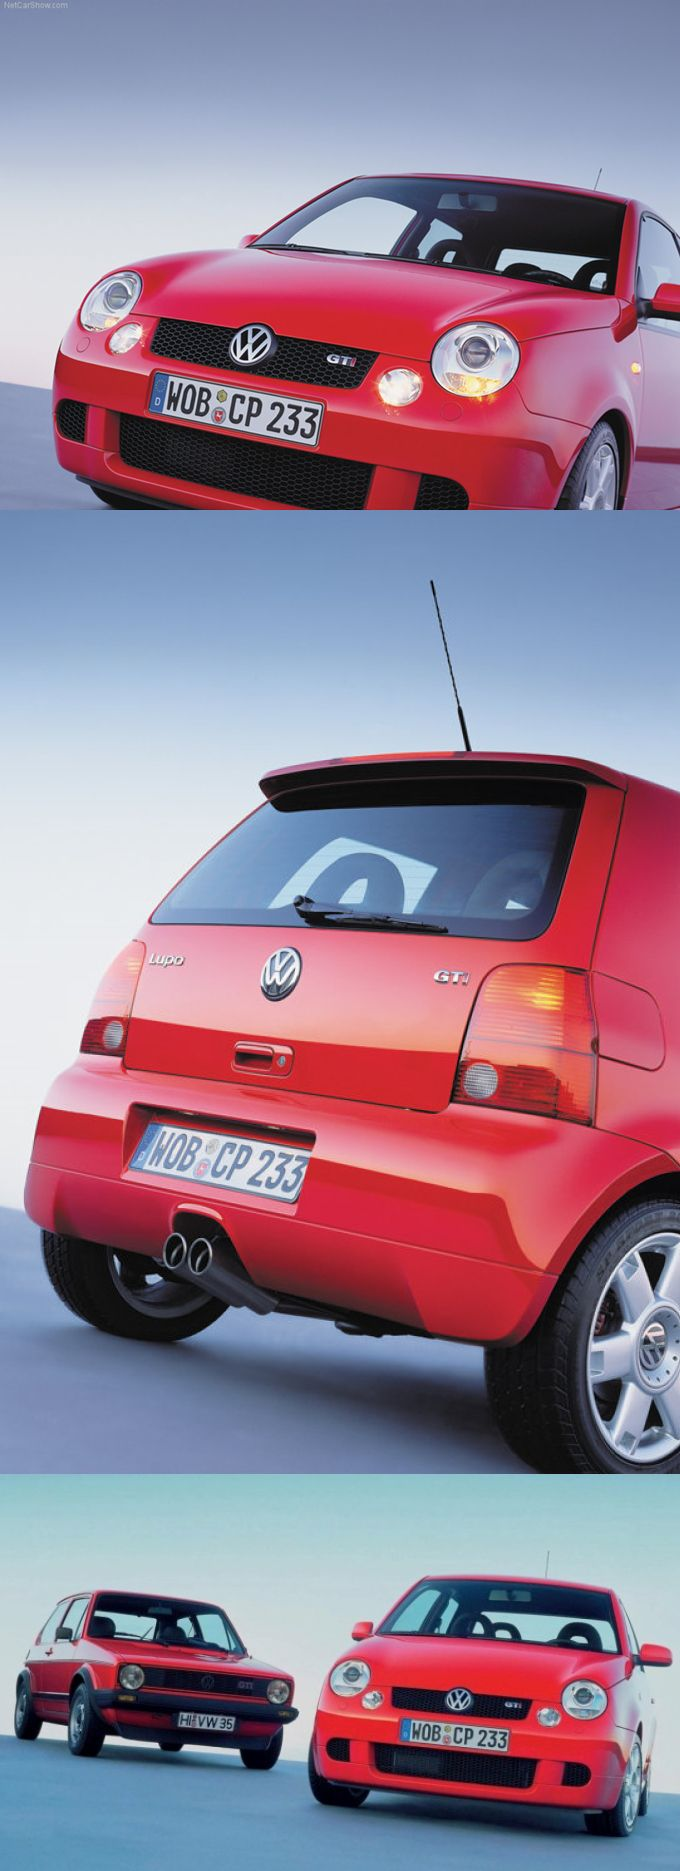 2000 VW Lupo GTi / 123hp / Germany / red / 17-192